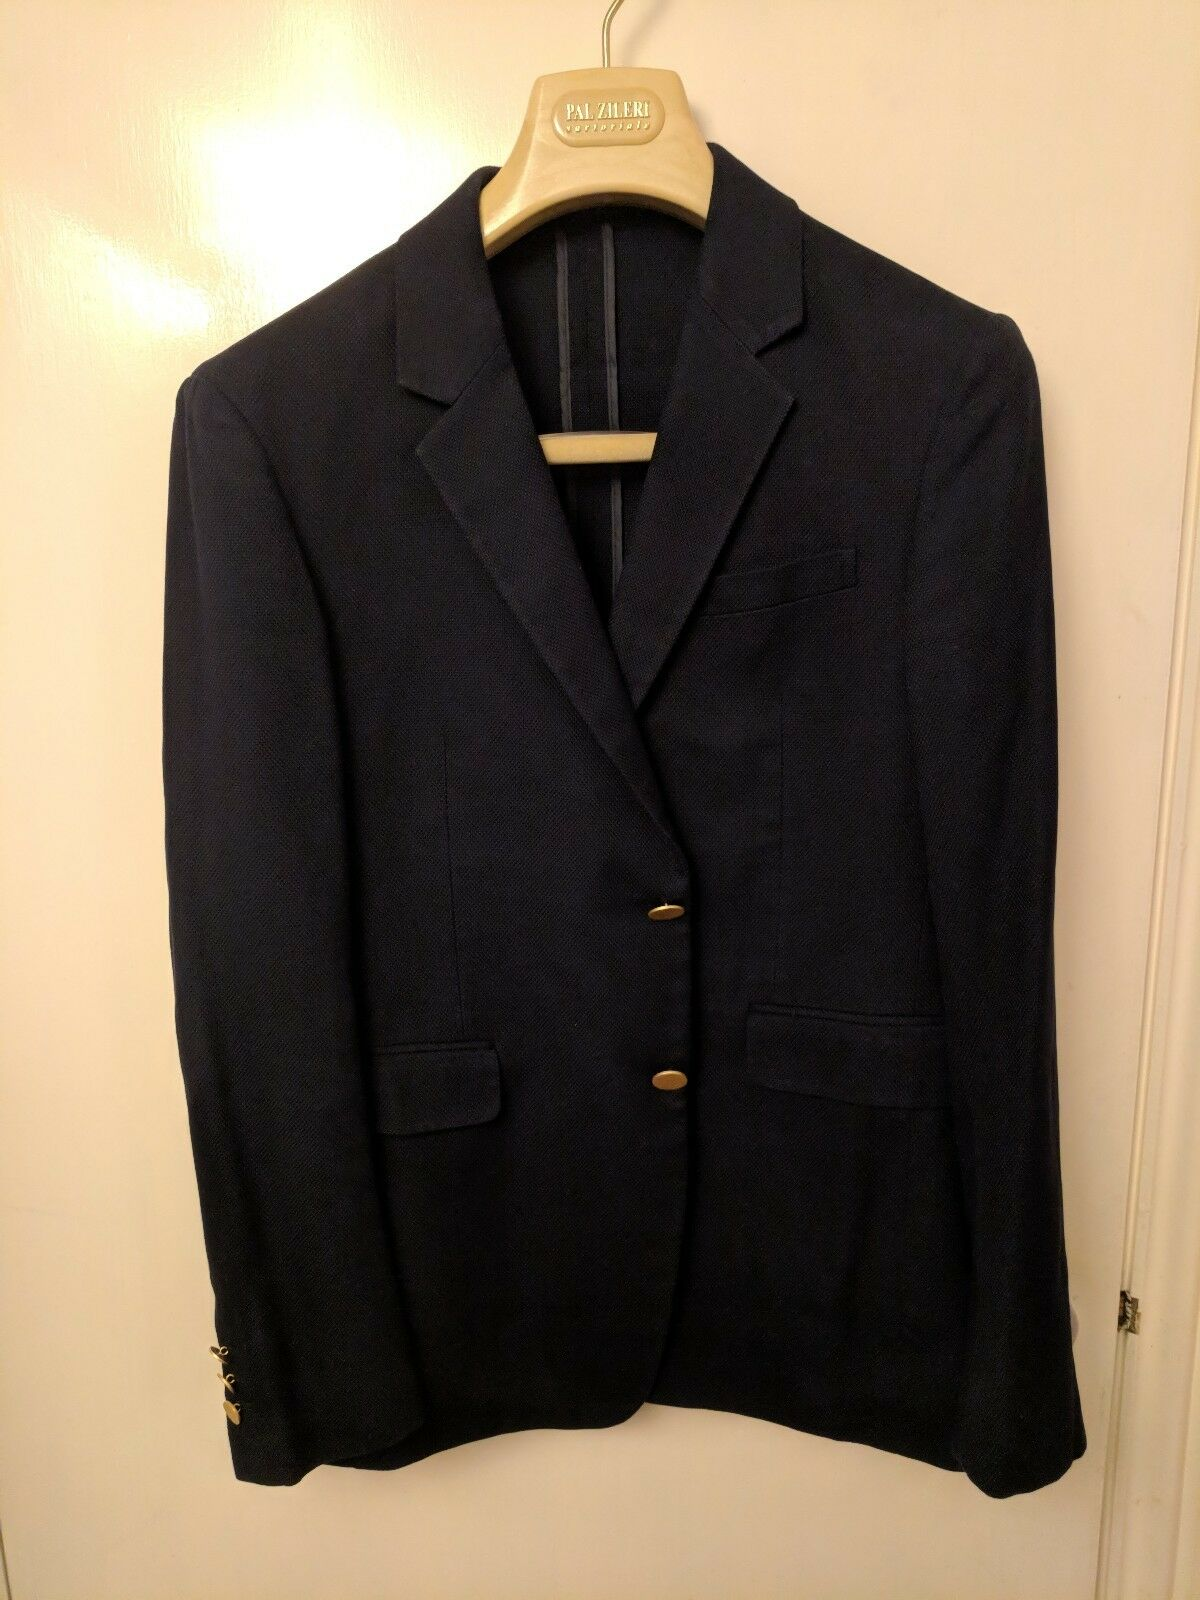 Prada Deconstructed Single-Breasted Cotton Jacket. Größe 48 (UK 38)